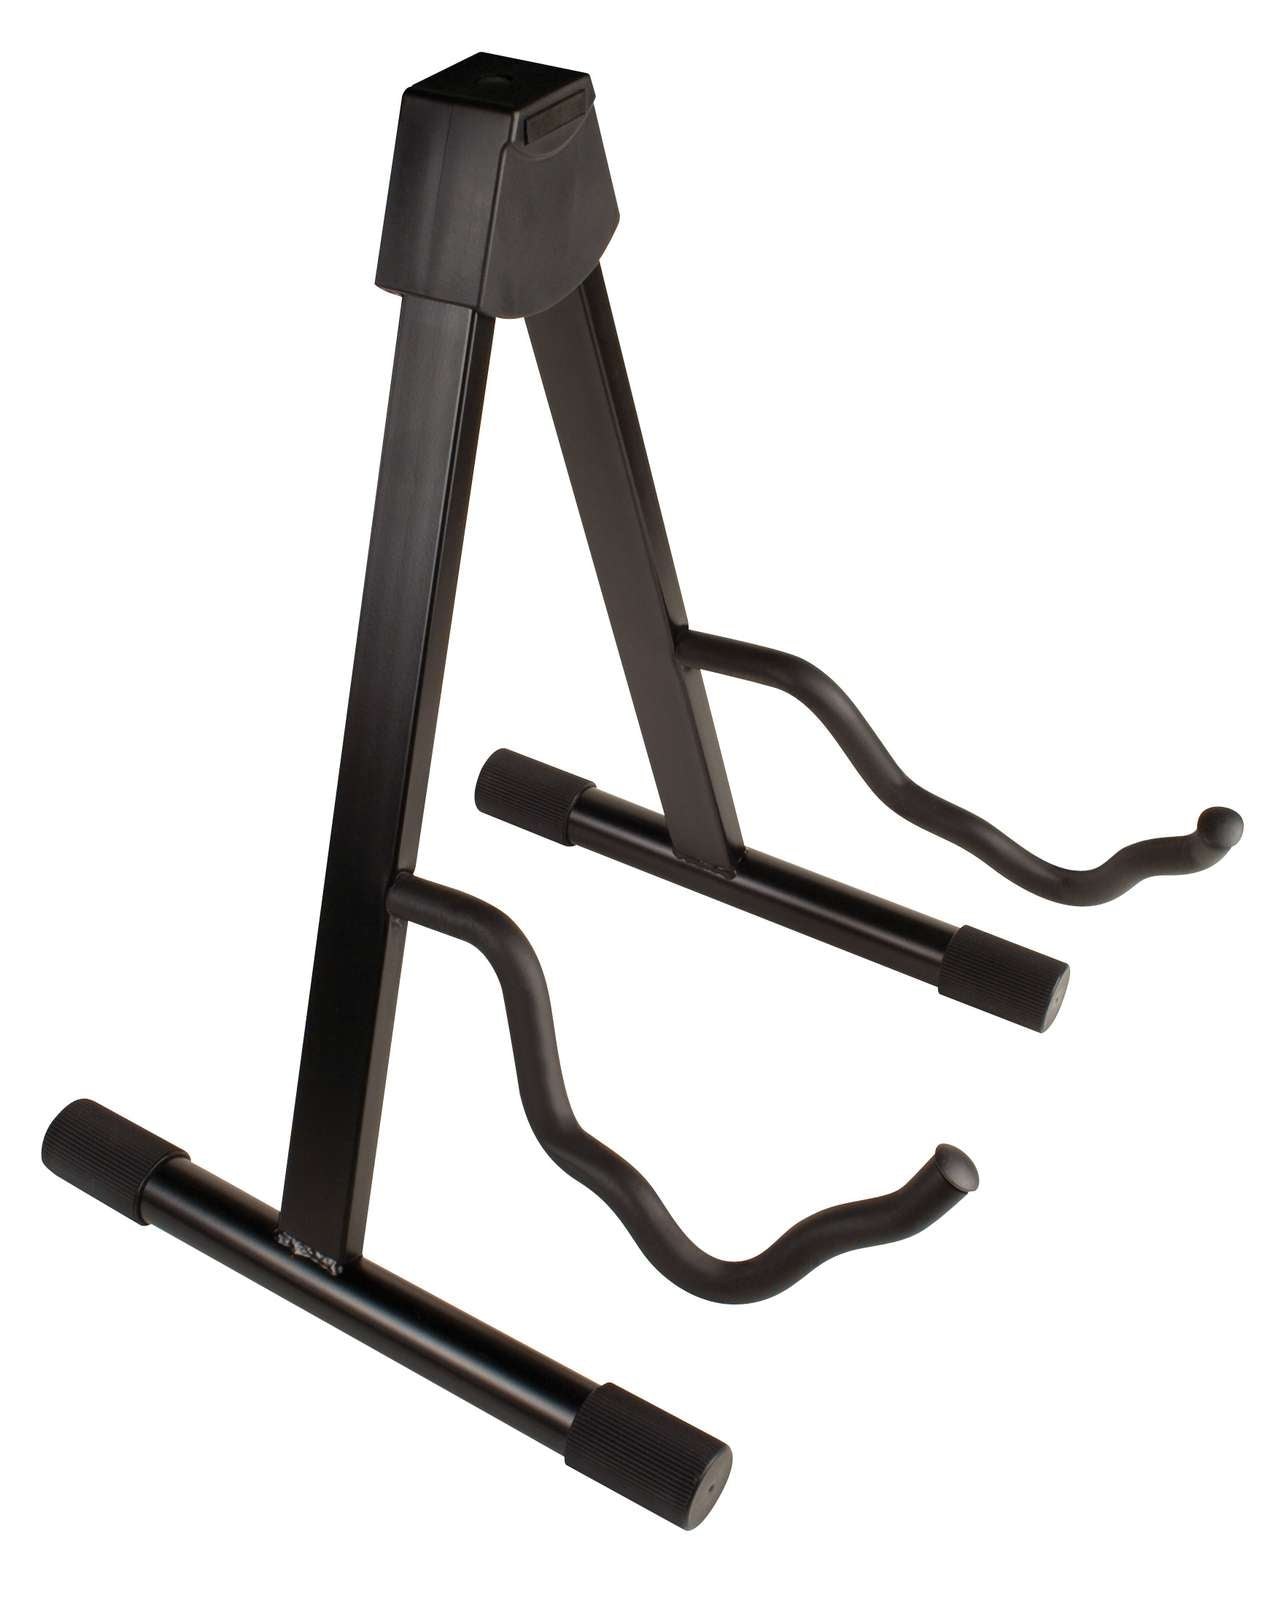 ULTIMATE SUPPORT JAMSTANDS A-FRAME GUITAR STAND